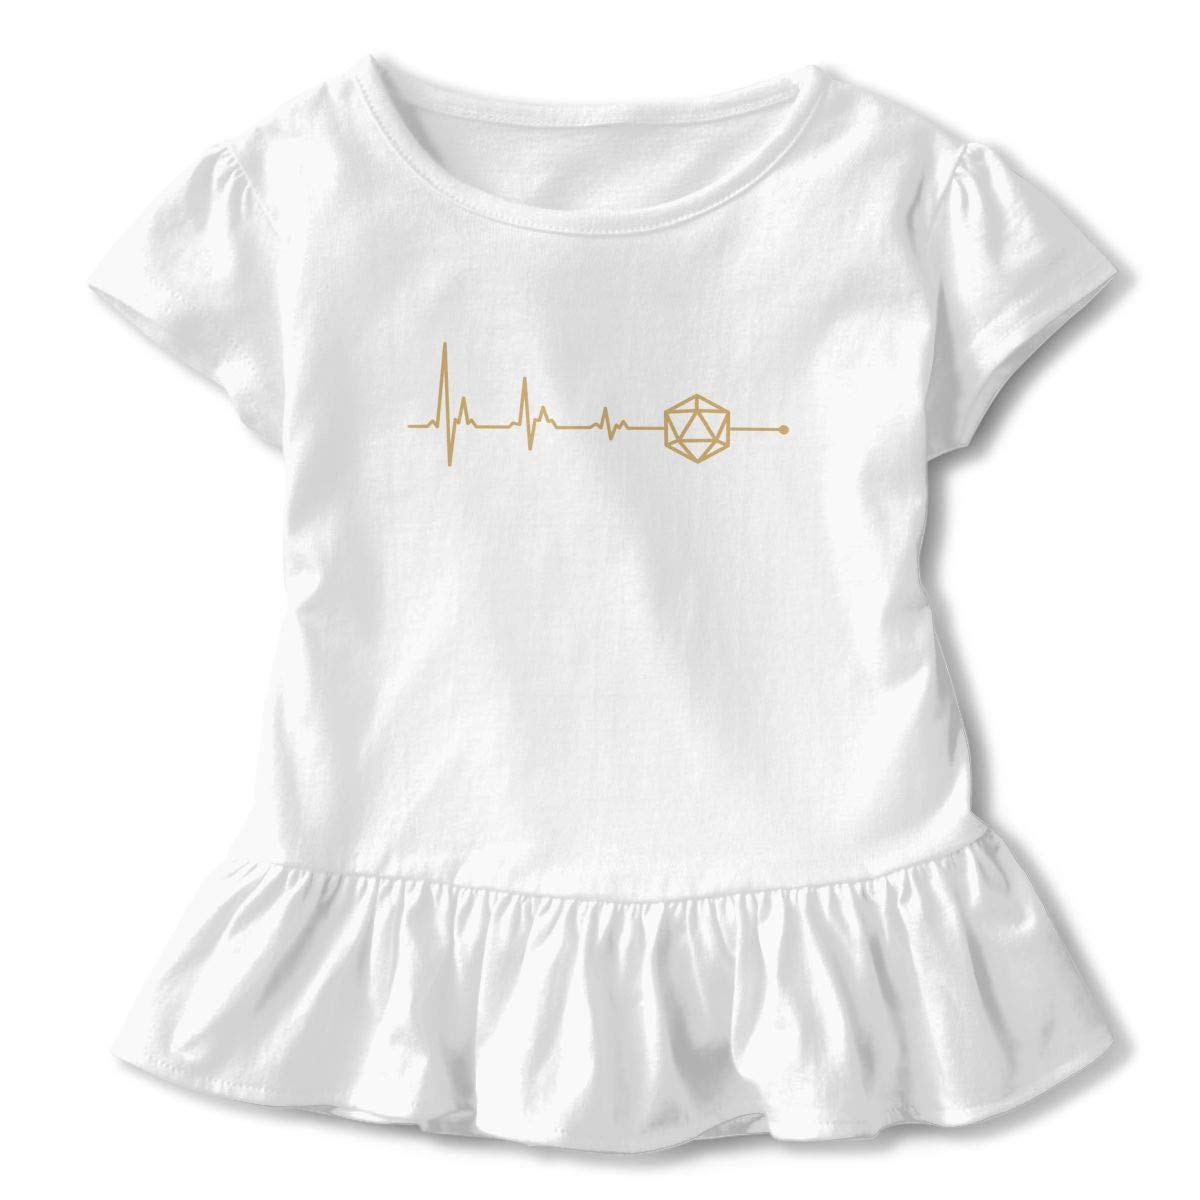 D20 Dice DND Heartbeat Toddler Baby Girl Basic Printed Ruffle Short Sleeve Cotton T Shirts Tops Tee Clothes White